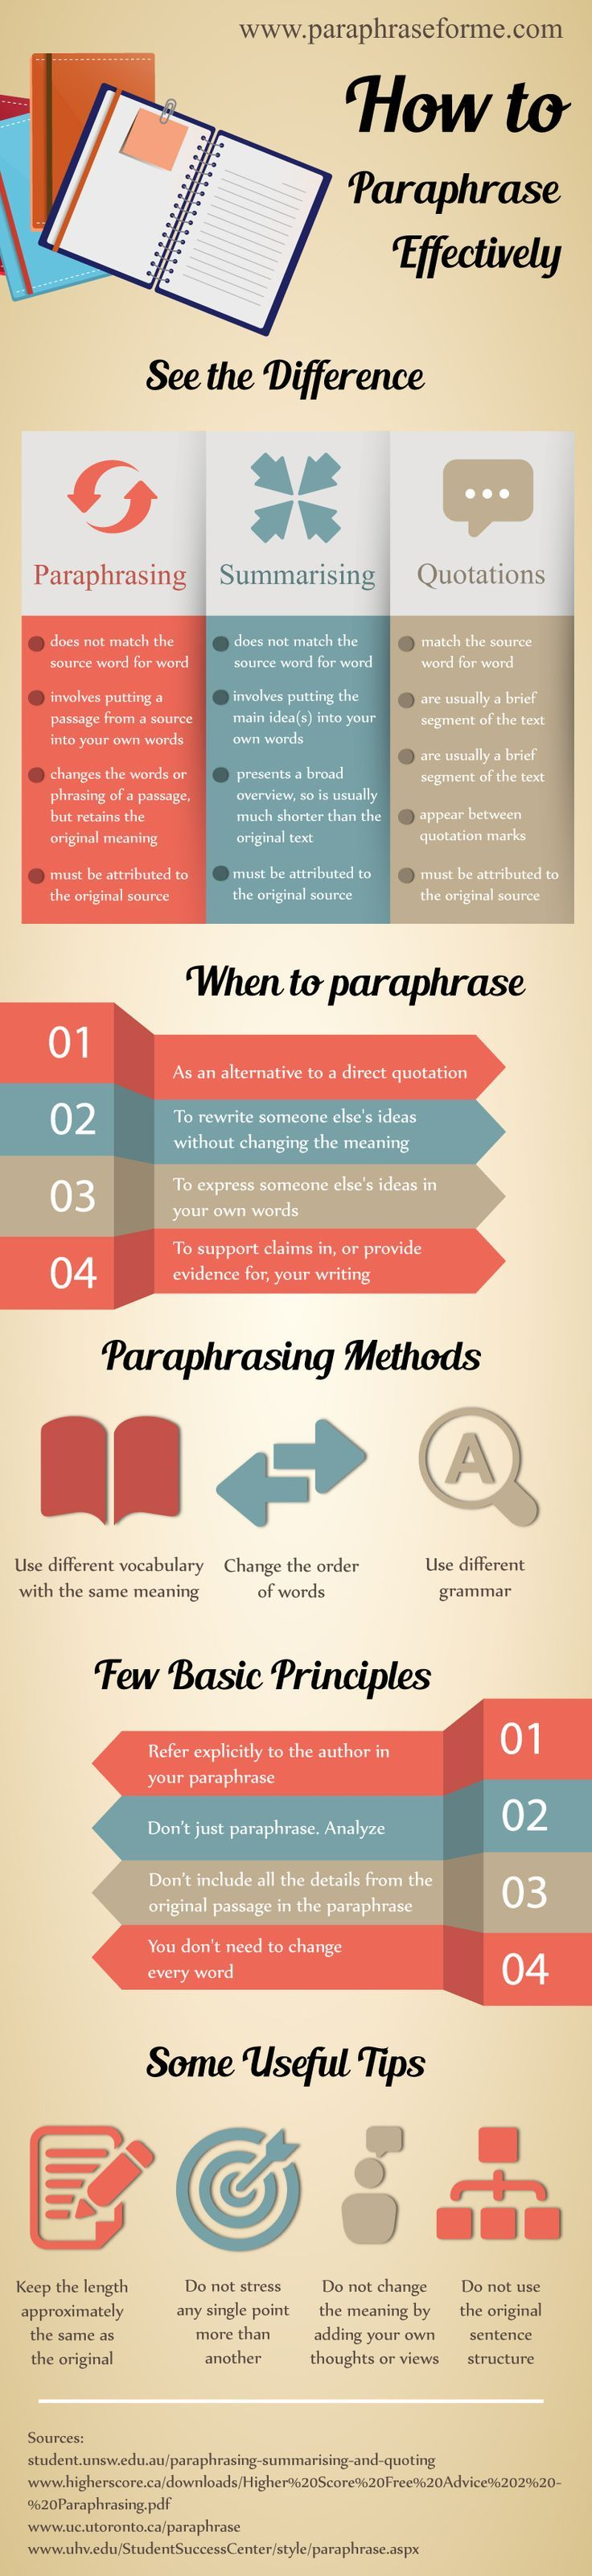 how to paraphrase a paragraph infographic education and teaching you will get the information about how to paraphrase effectively please cleck here